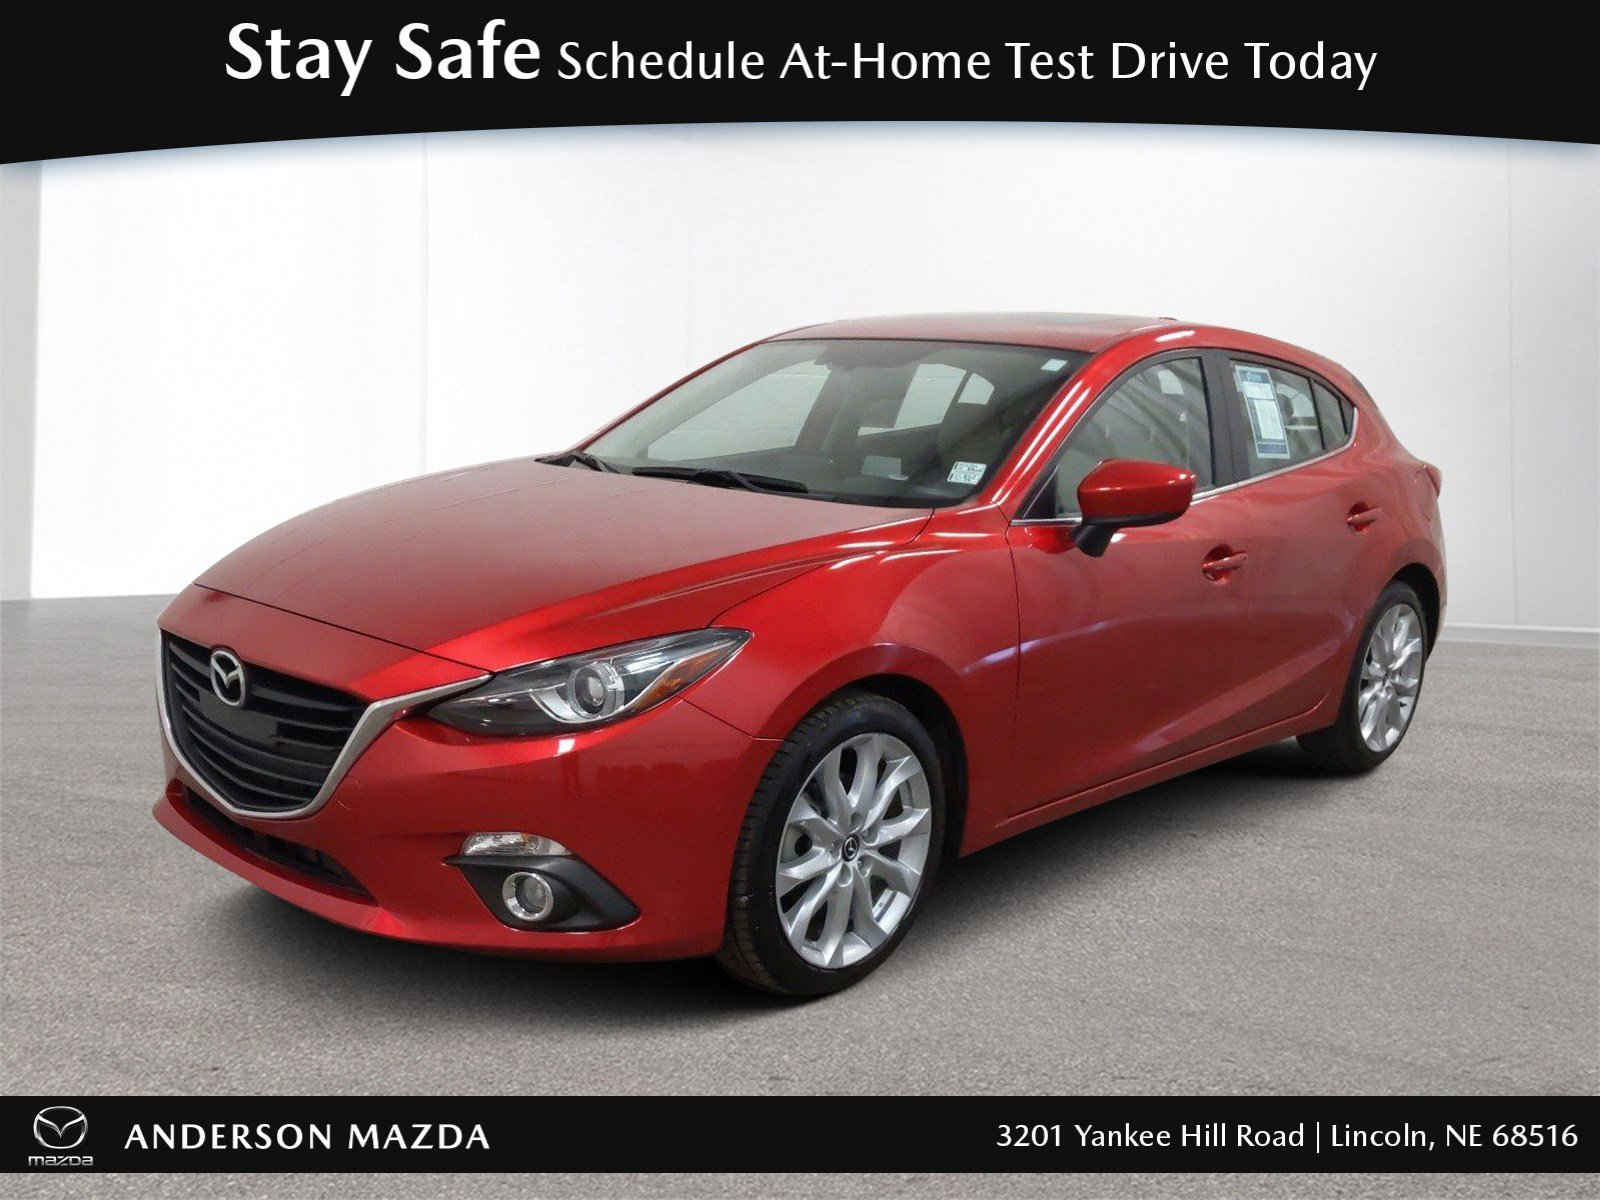 Used 2014 Mazda Mazda3 s Grand Touring Hatchback for sale in Lincoln NE